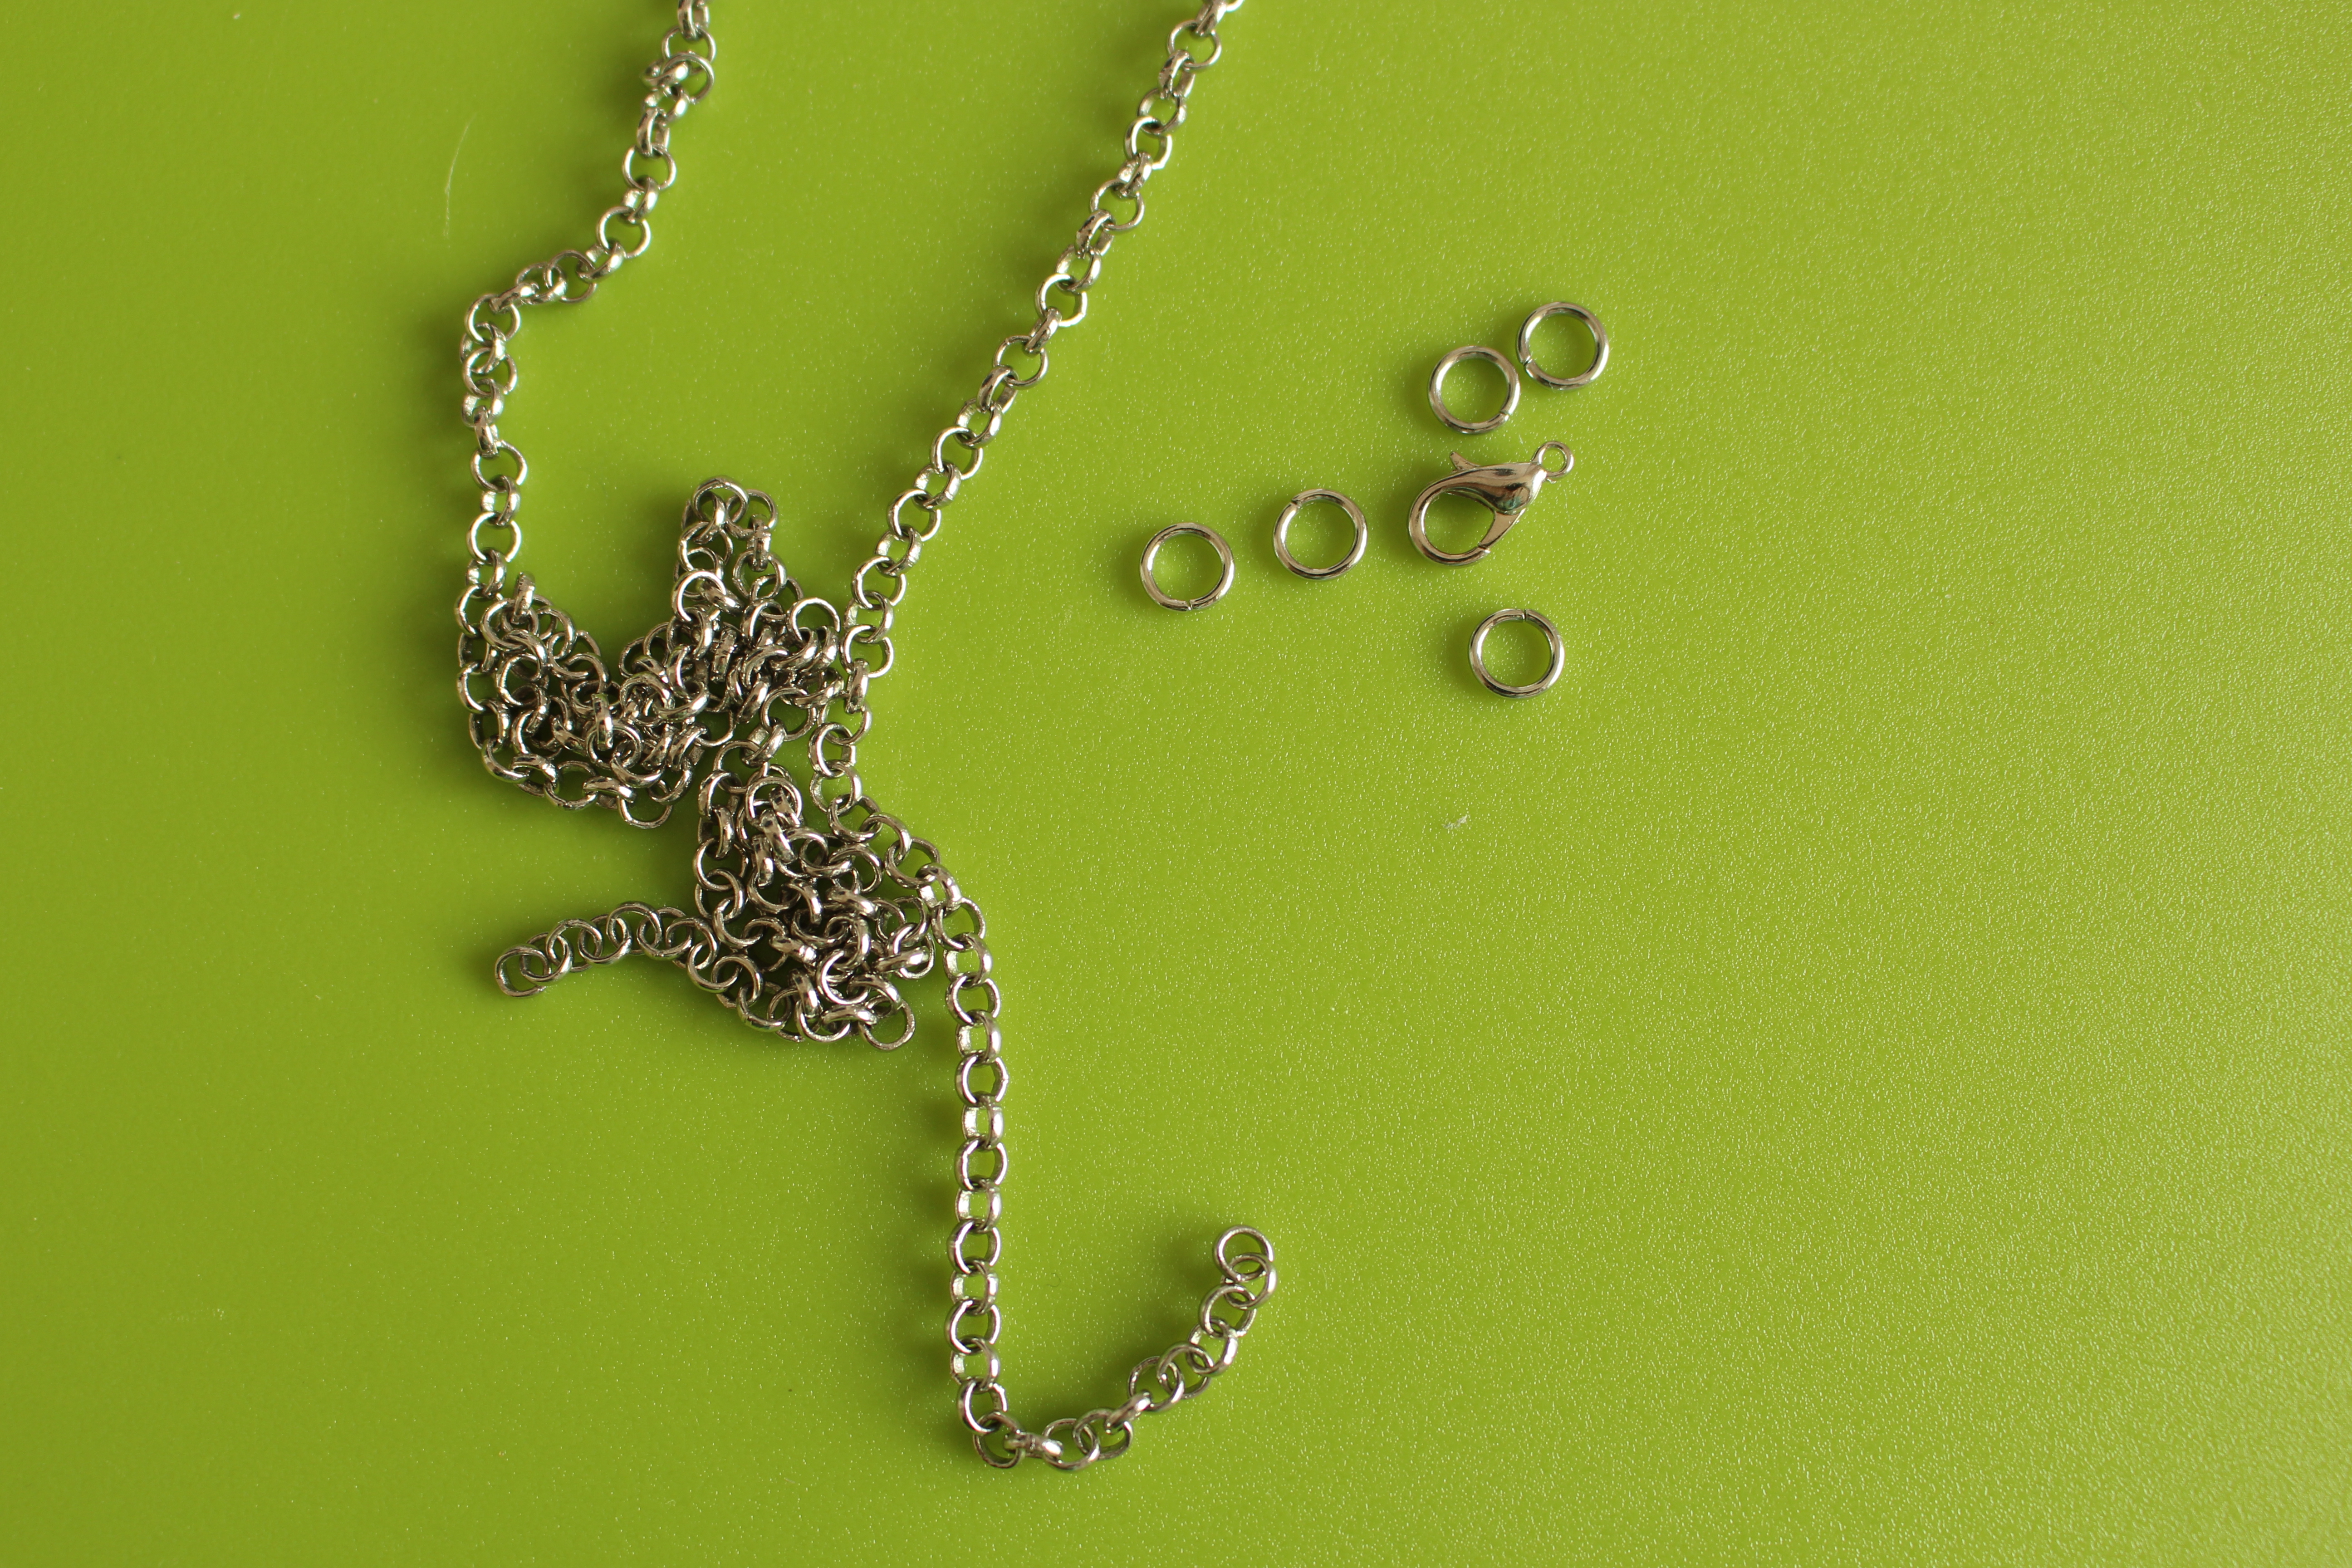 Picture of Necklace Materials